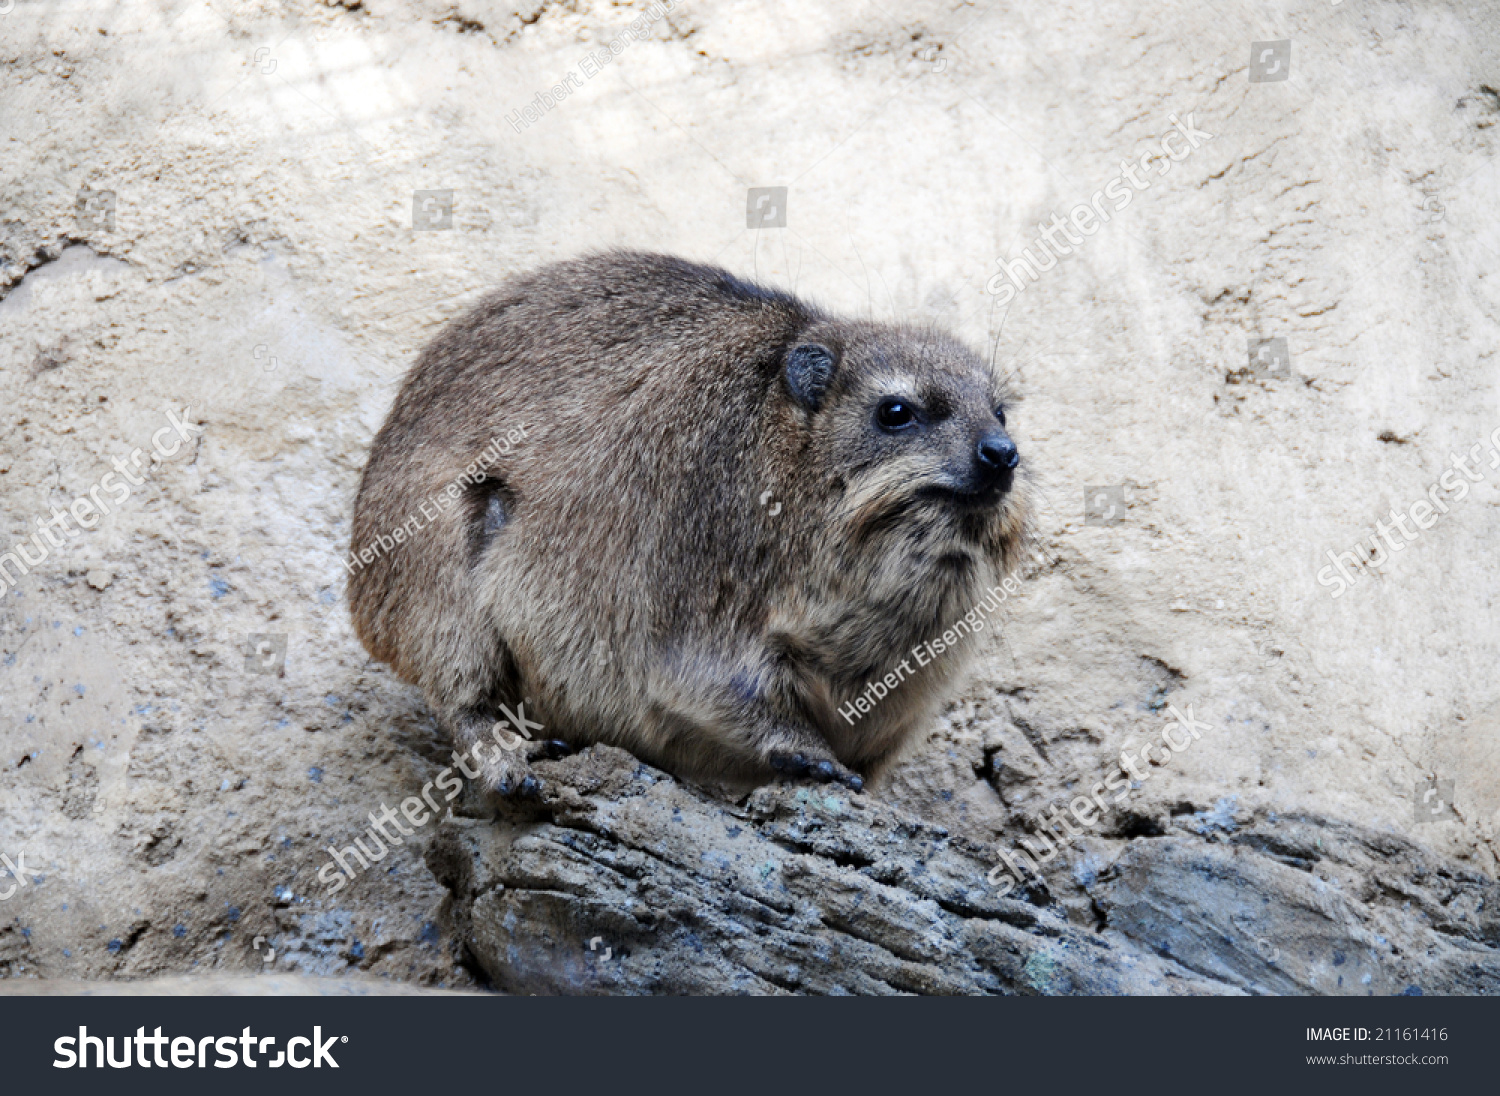 A Large Rodent Nutria In South Africa Stock Photo 21161416 : Shutterstock